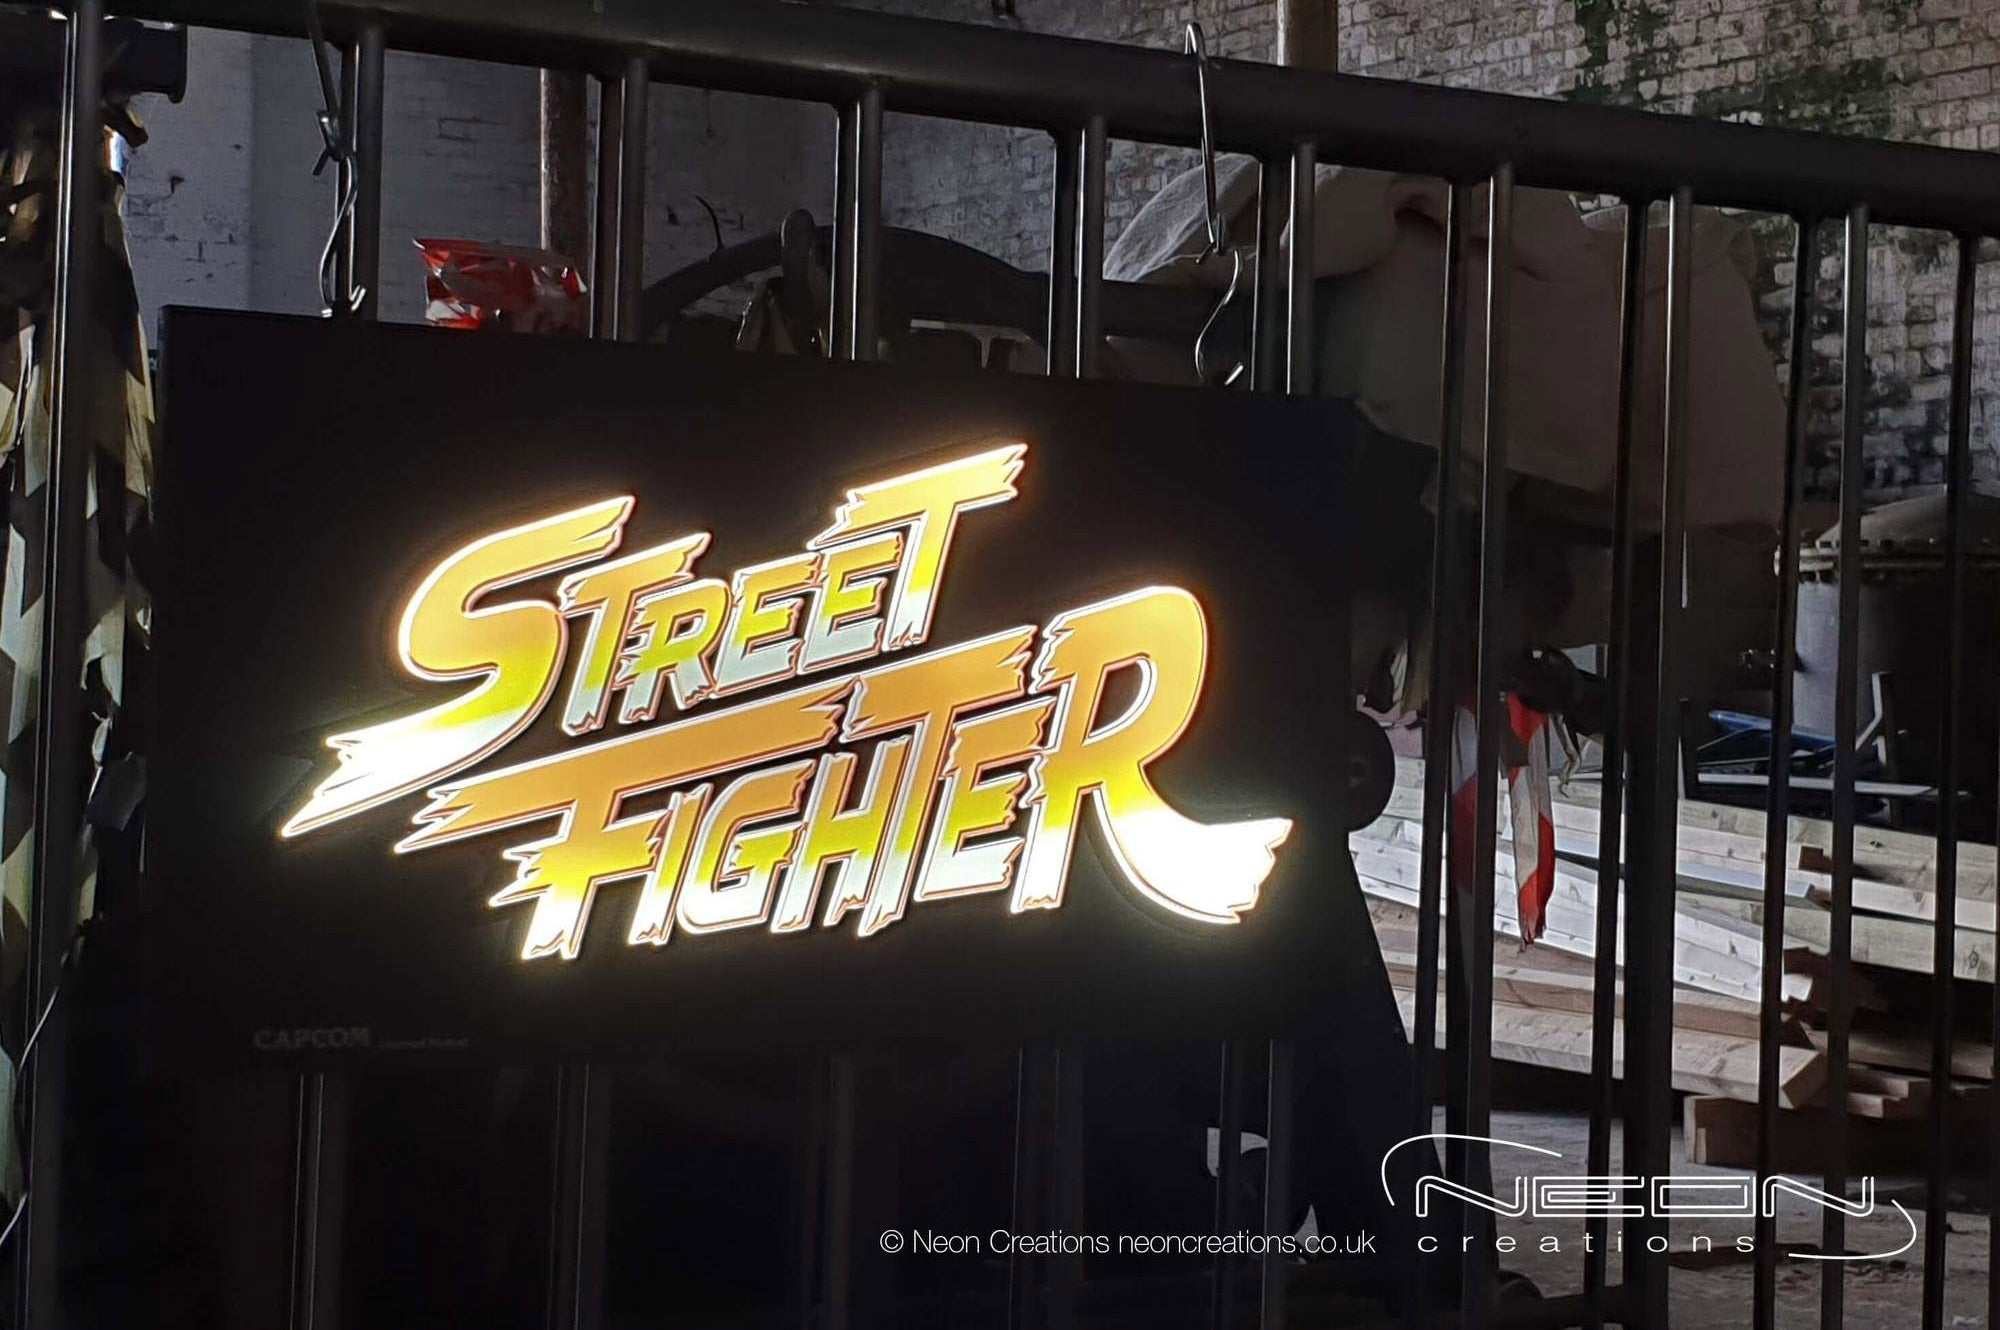 Street Fighter 2 – Printed LED Light Tile